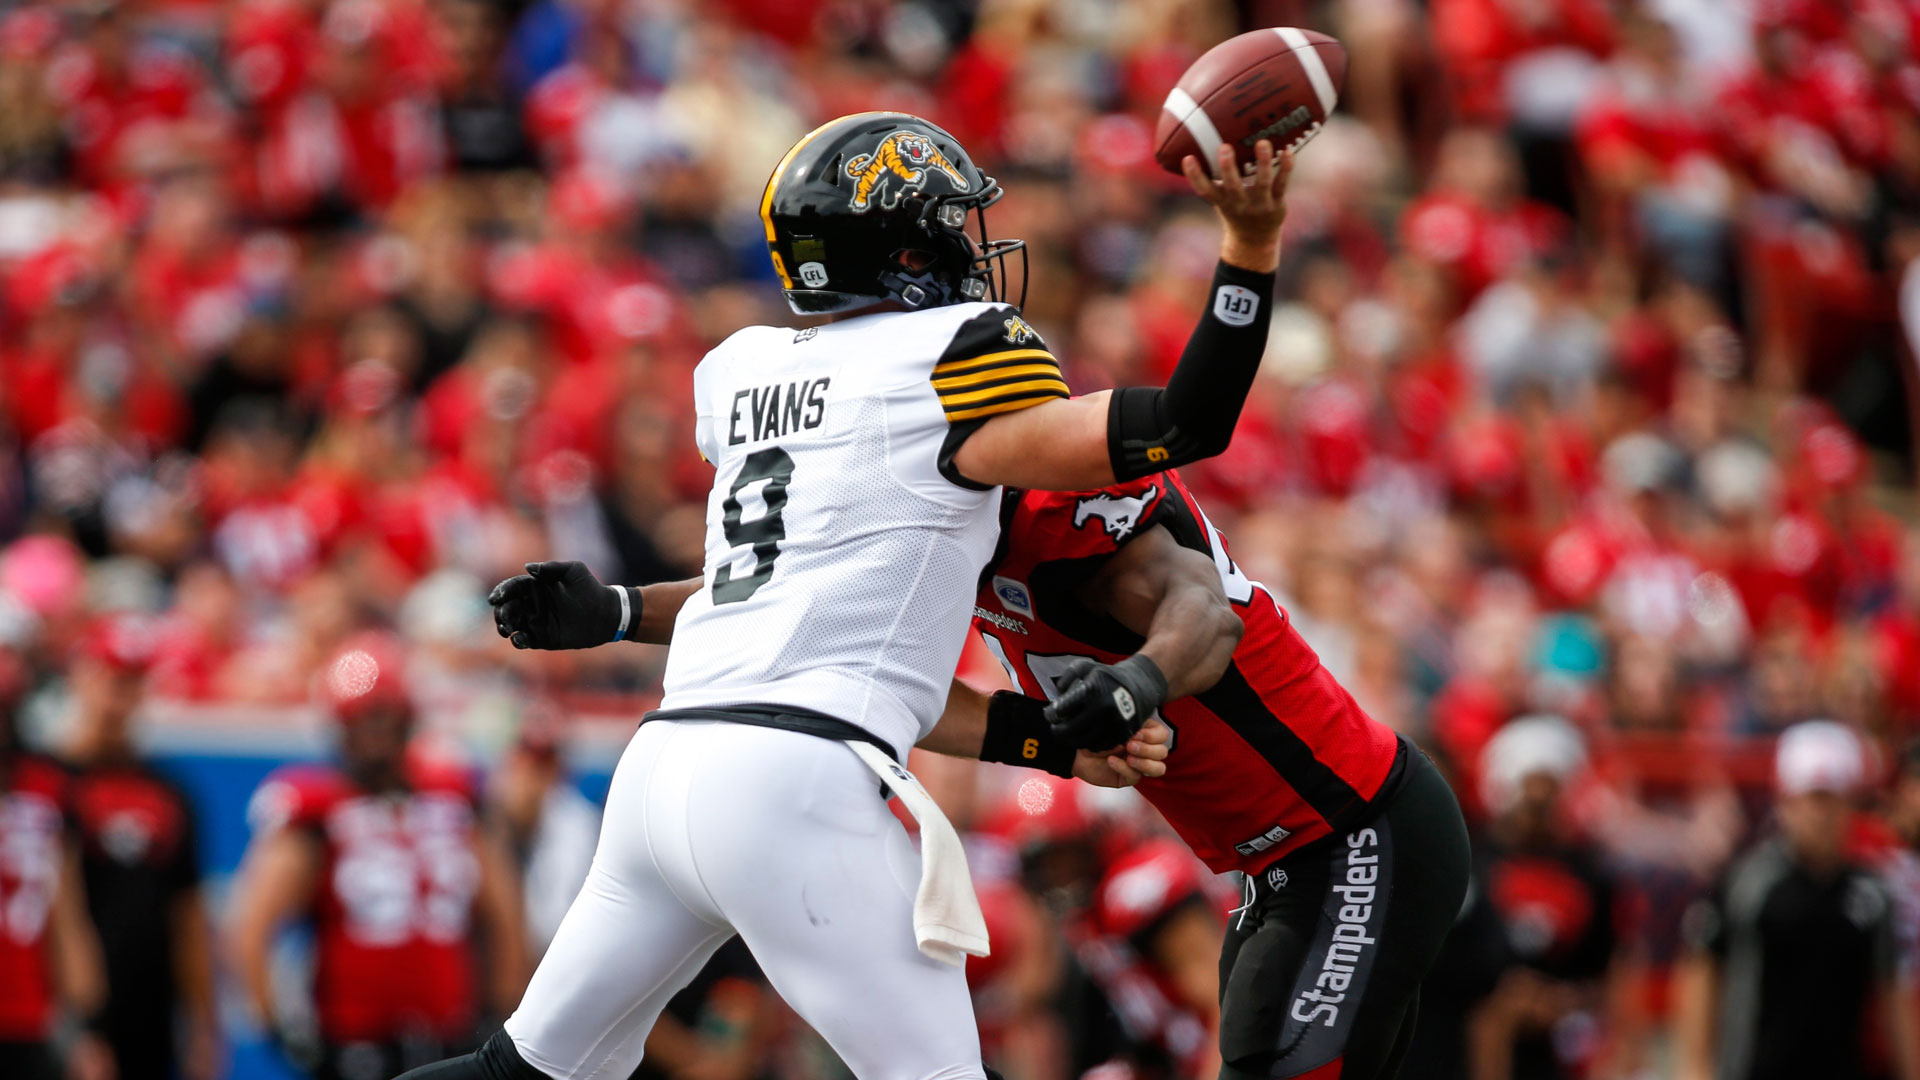 Offensive meltdown, late field goal block allows Stamps to sneak by Ticats